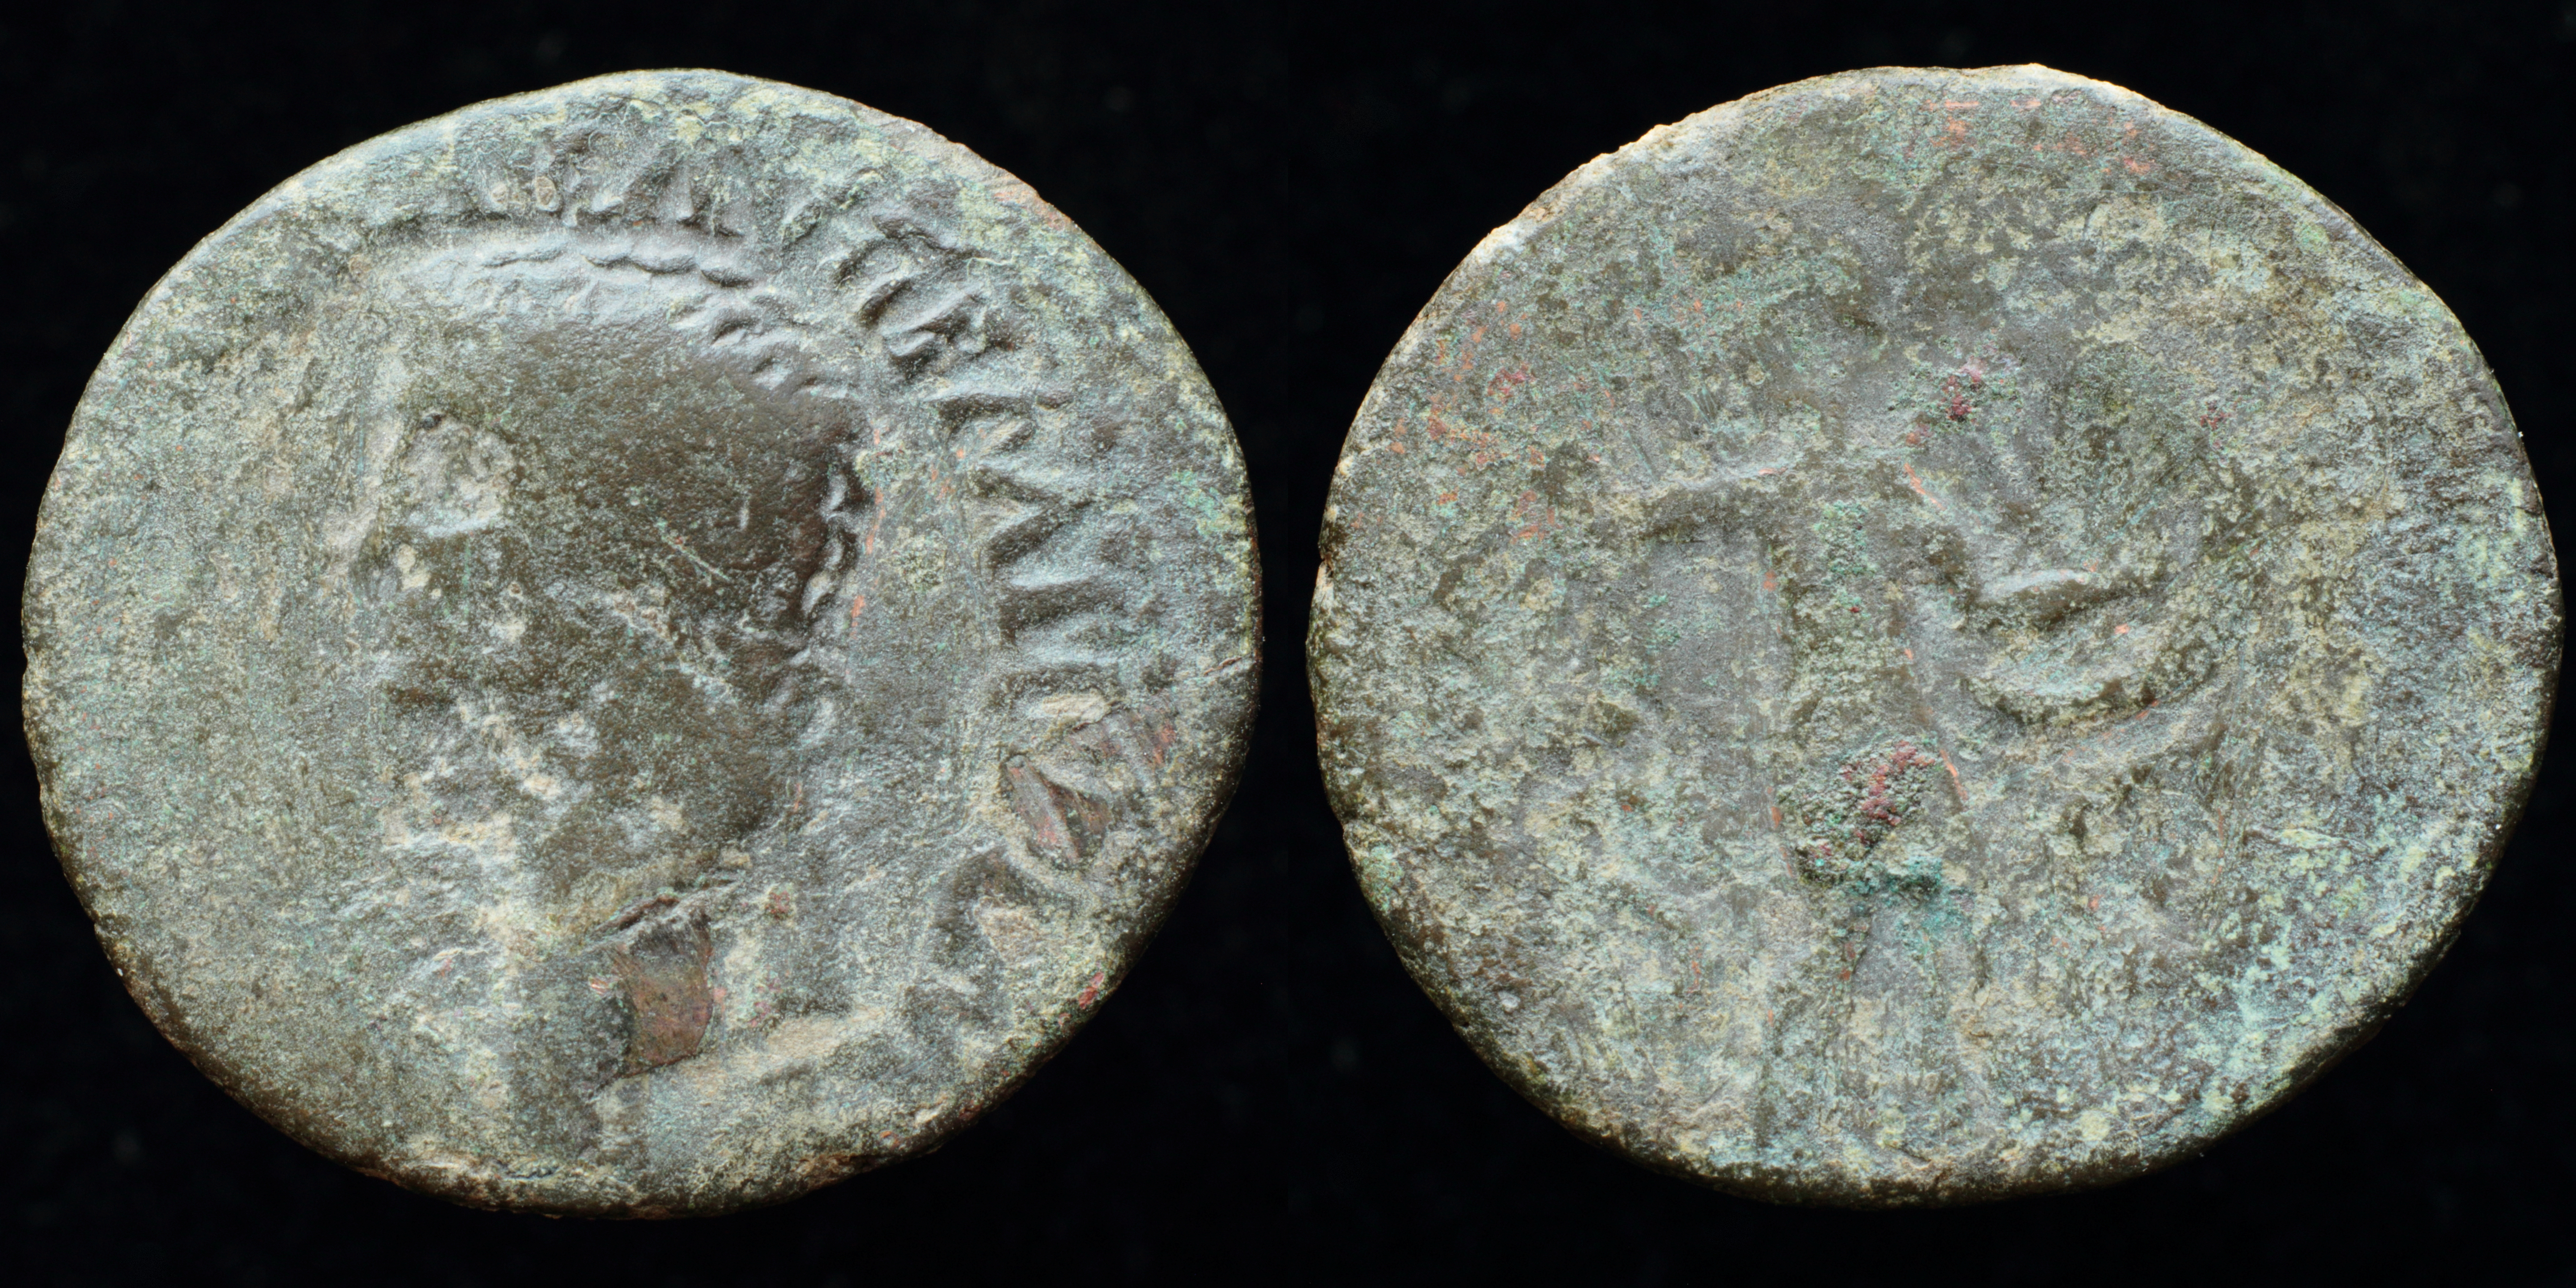 /Files/Images/Coinsite/CoinDB/Claudius_Minerva_2.jpg